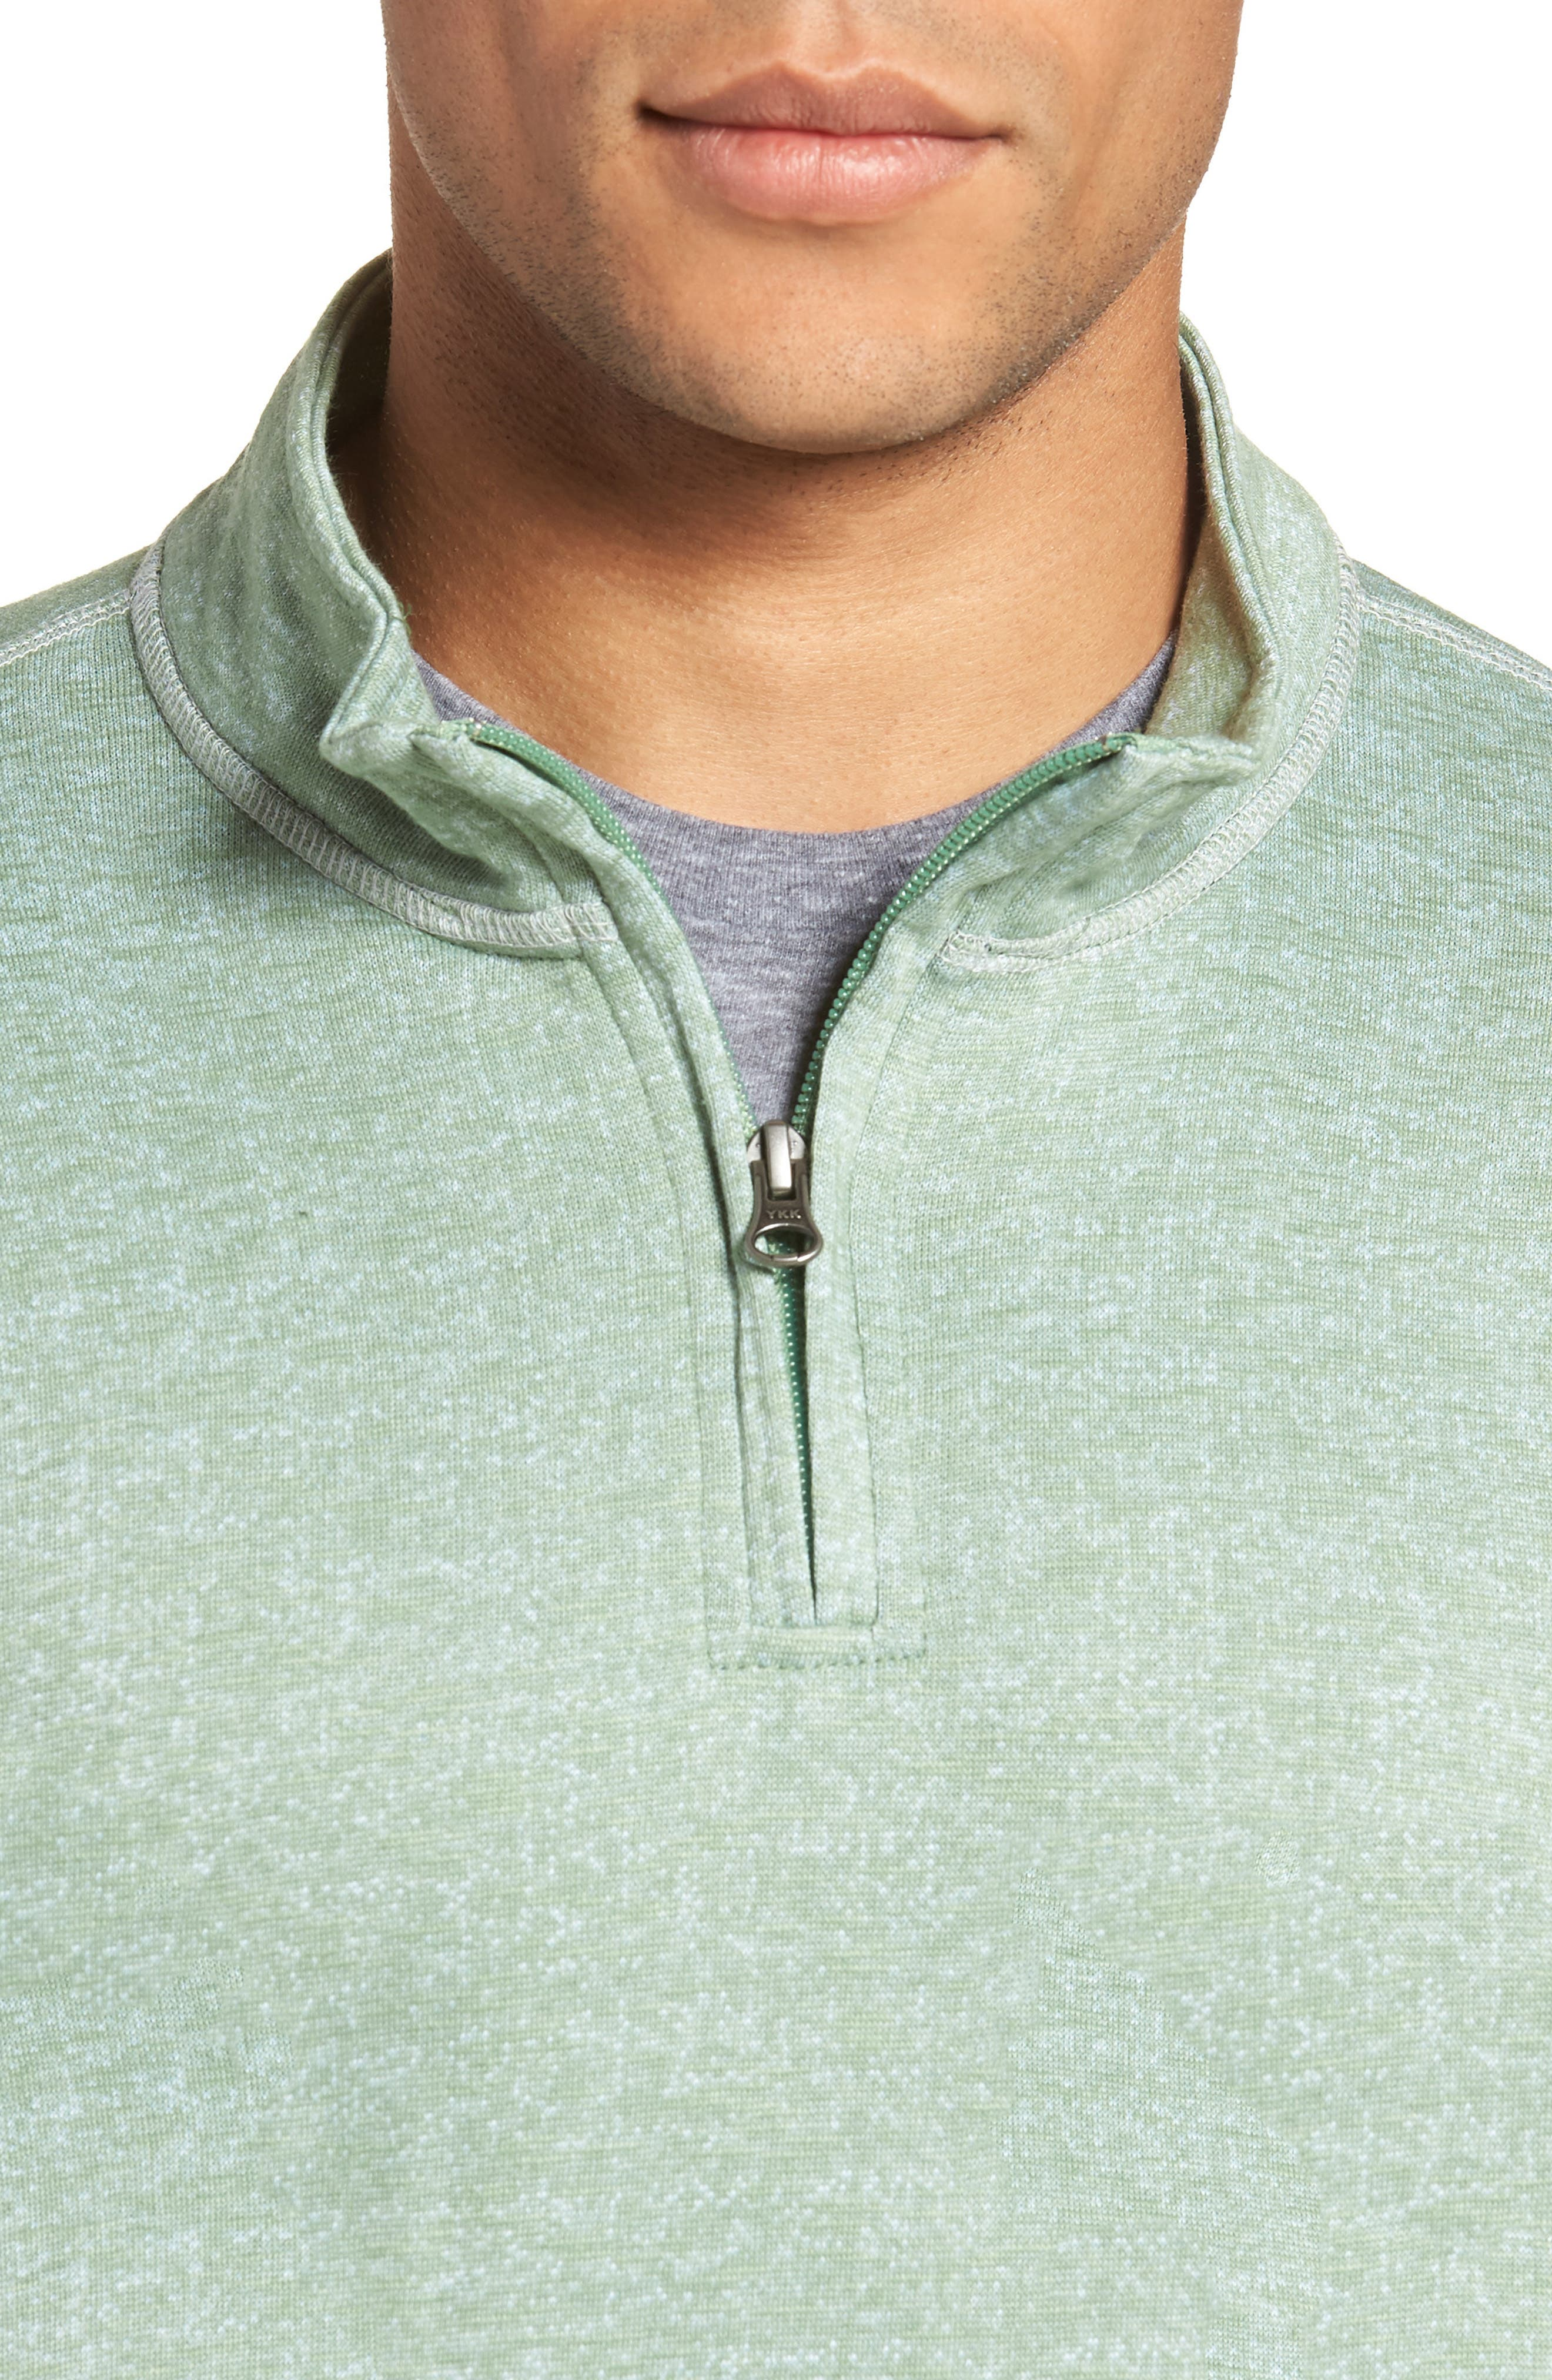 French Terry Quarter Zip Shirt,                             Alternate thumbnail 4, color,                             HEDGE